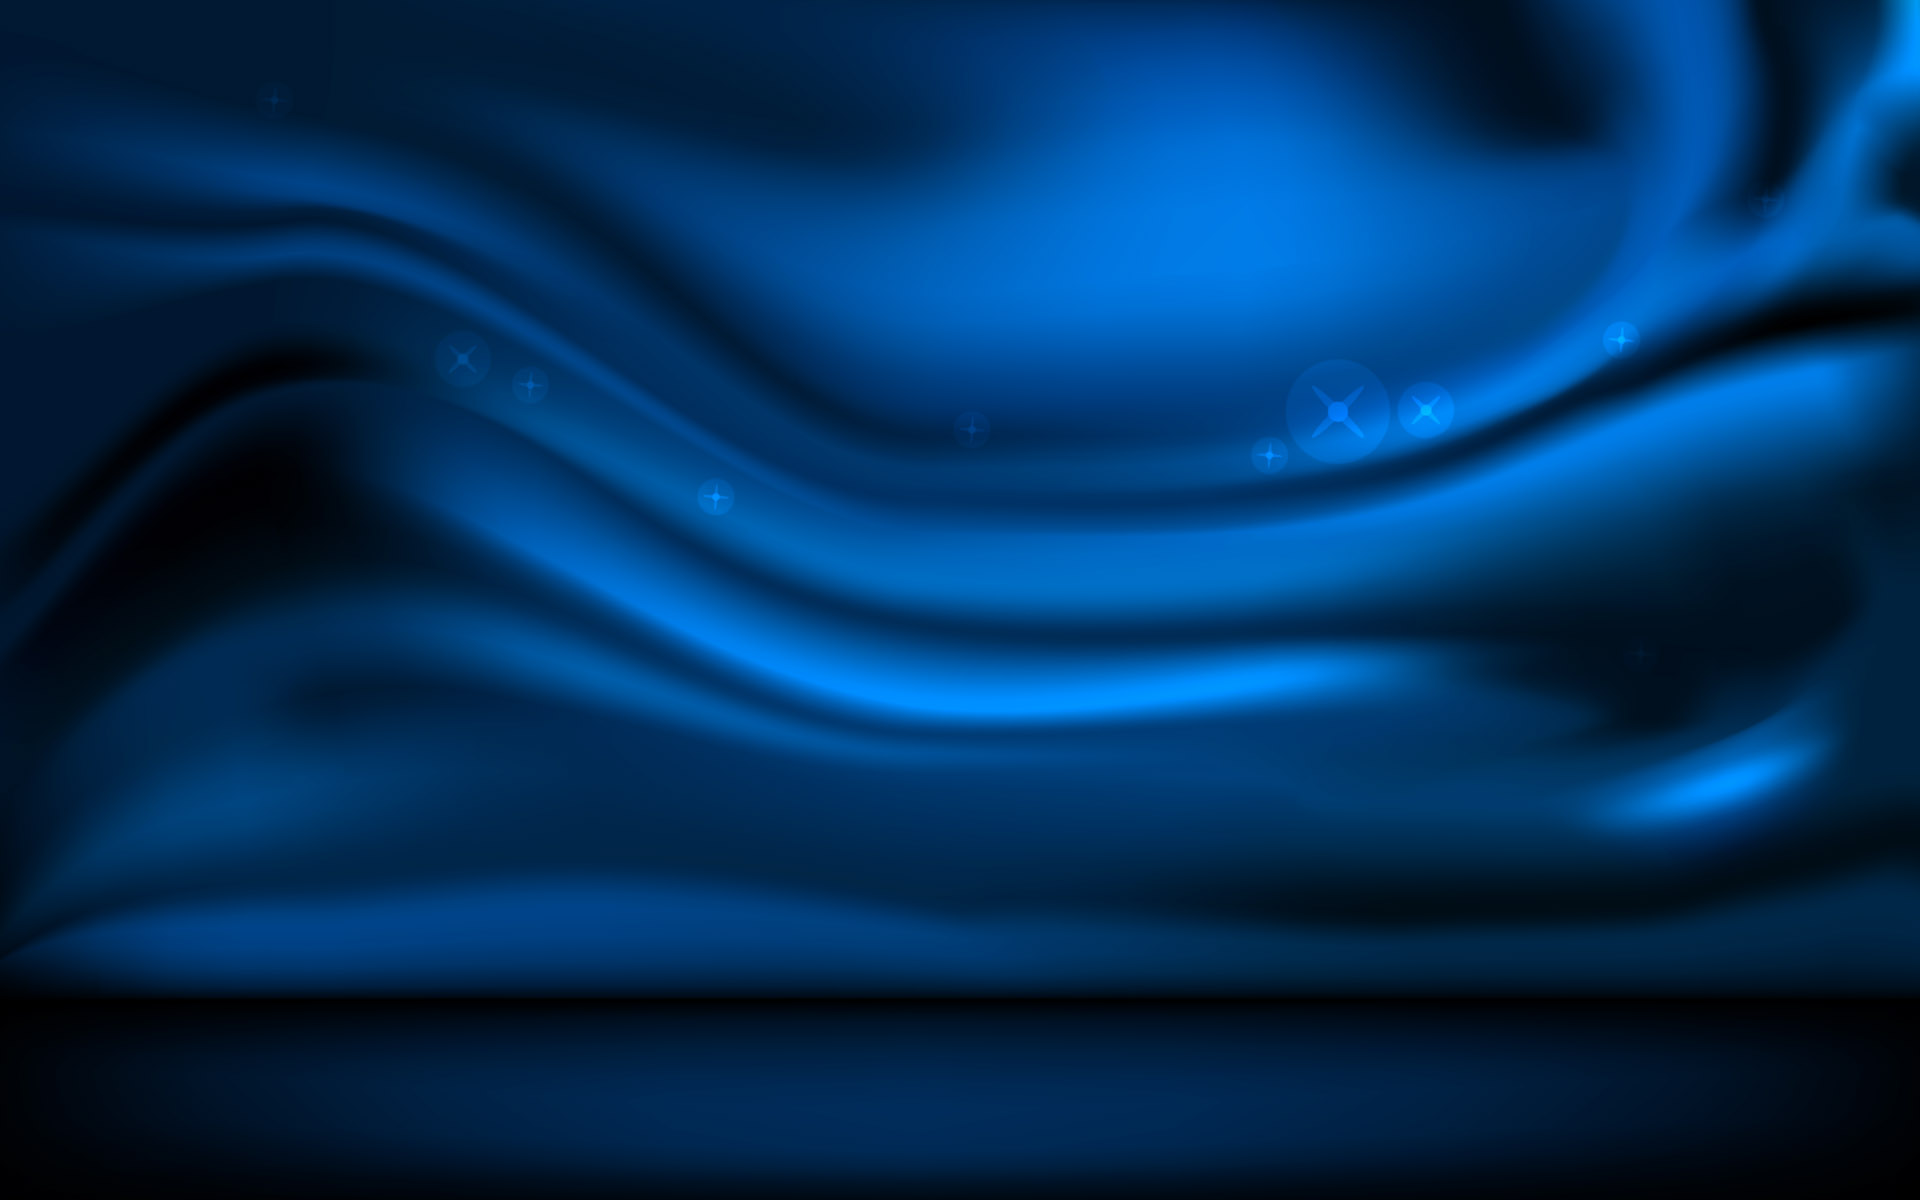 Dark Blue Backgrounds wallpaper wallpaper hd background desktop 1920x1200